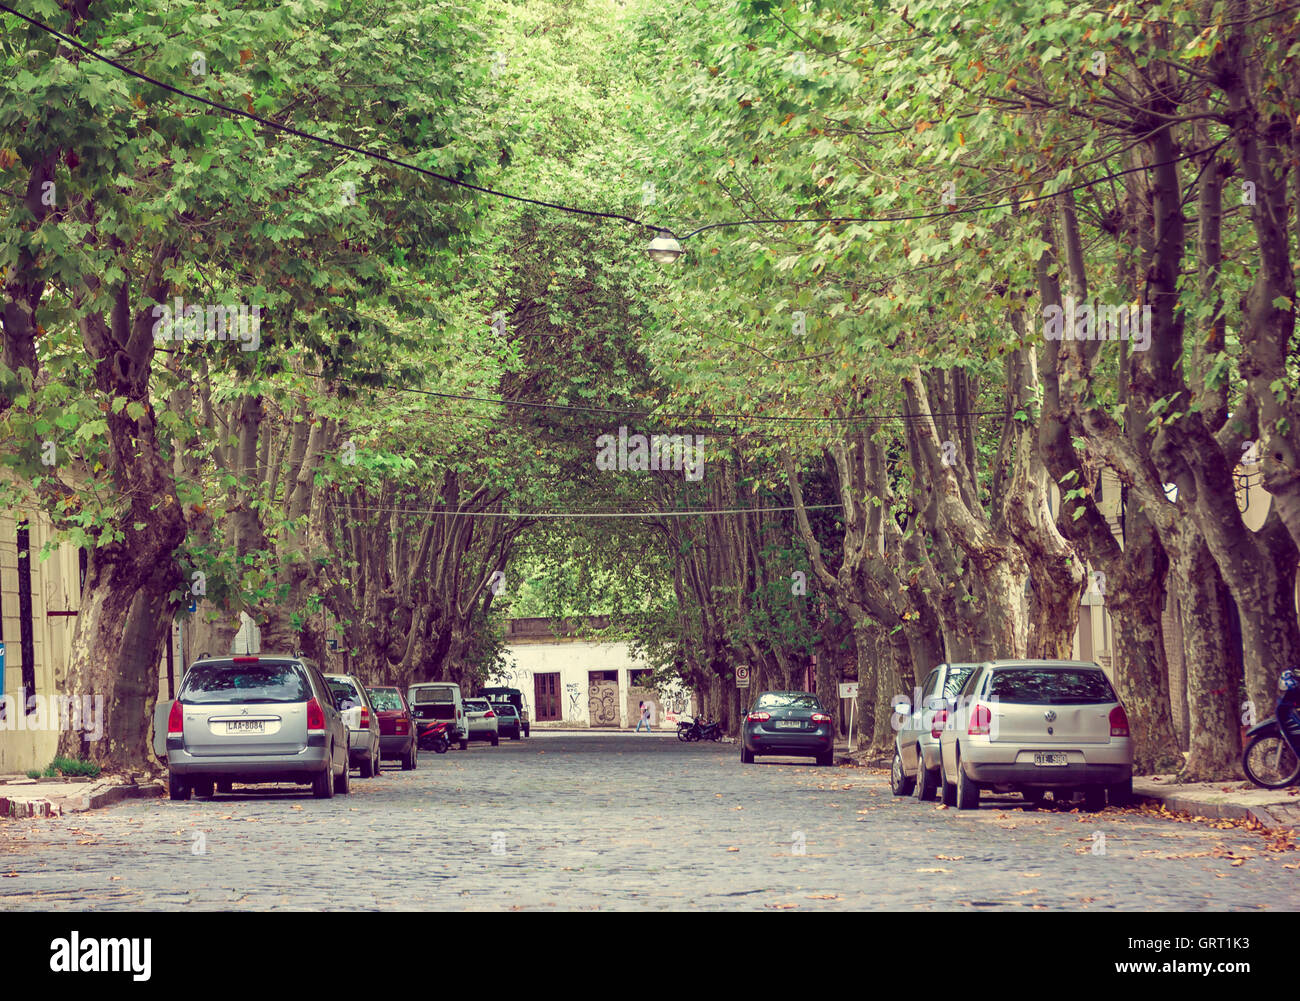 COLONIA DEL SACRAMENTO, URUGUAY - MAY 04, 2016: nice street with some big trees on the sidewalks and some parks - Stock Image